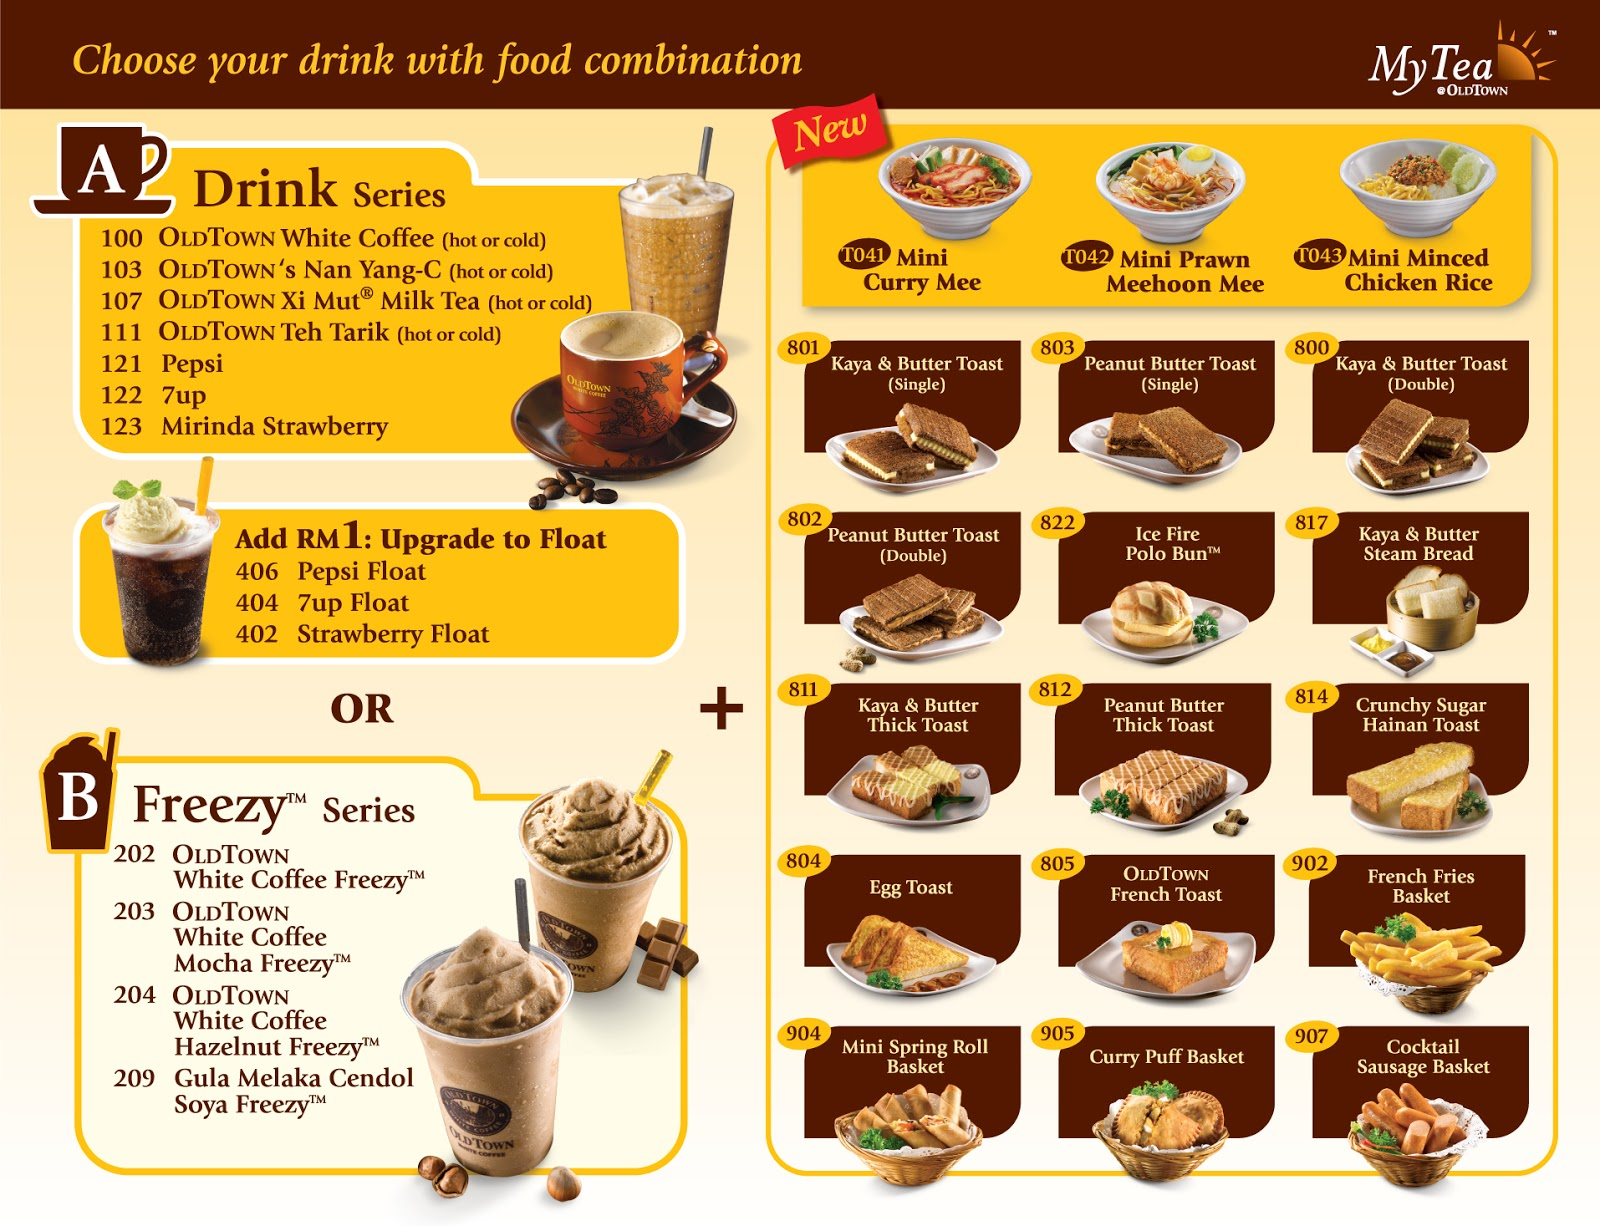 old town white coffee weakness essays Marketing essays - gloria jean coffee free essays[1] - marketing essays[2] gloria jean coffee the following report analyses the coffee industry of gloria jeans coffee in regard to its competitive position in the market.